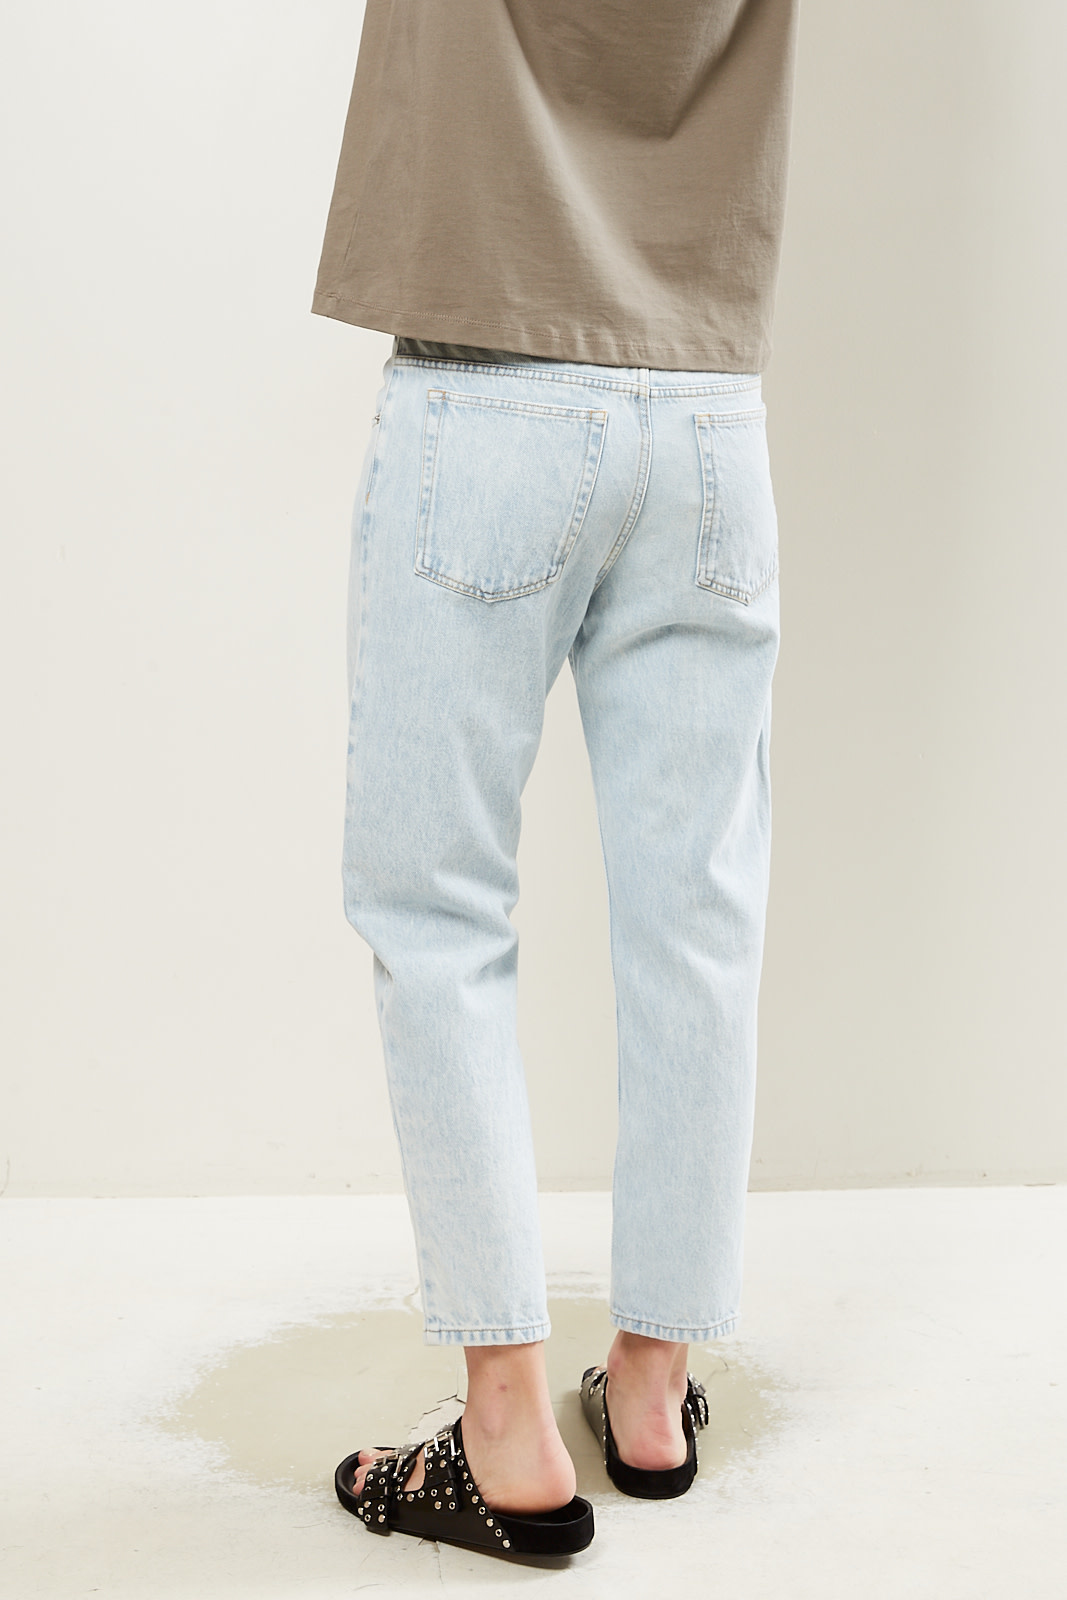 Etoile Isabel Marant - Neasr jeans trousers